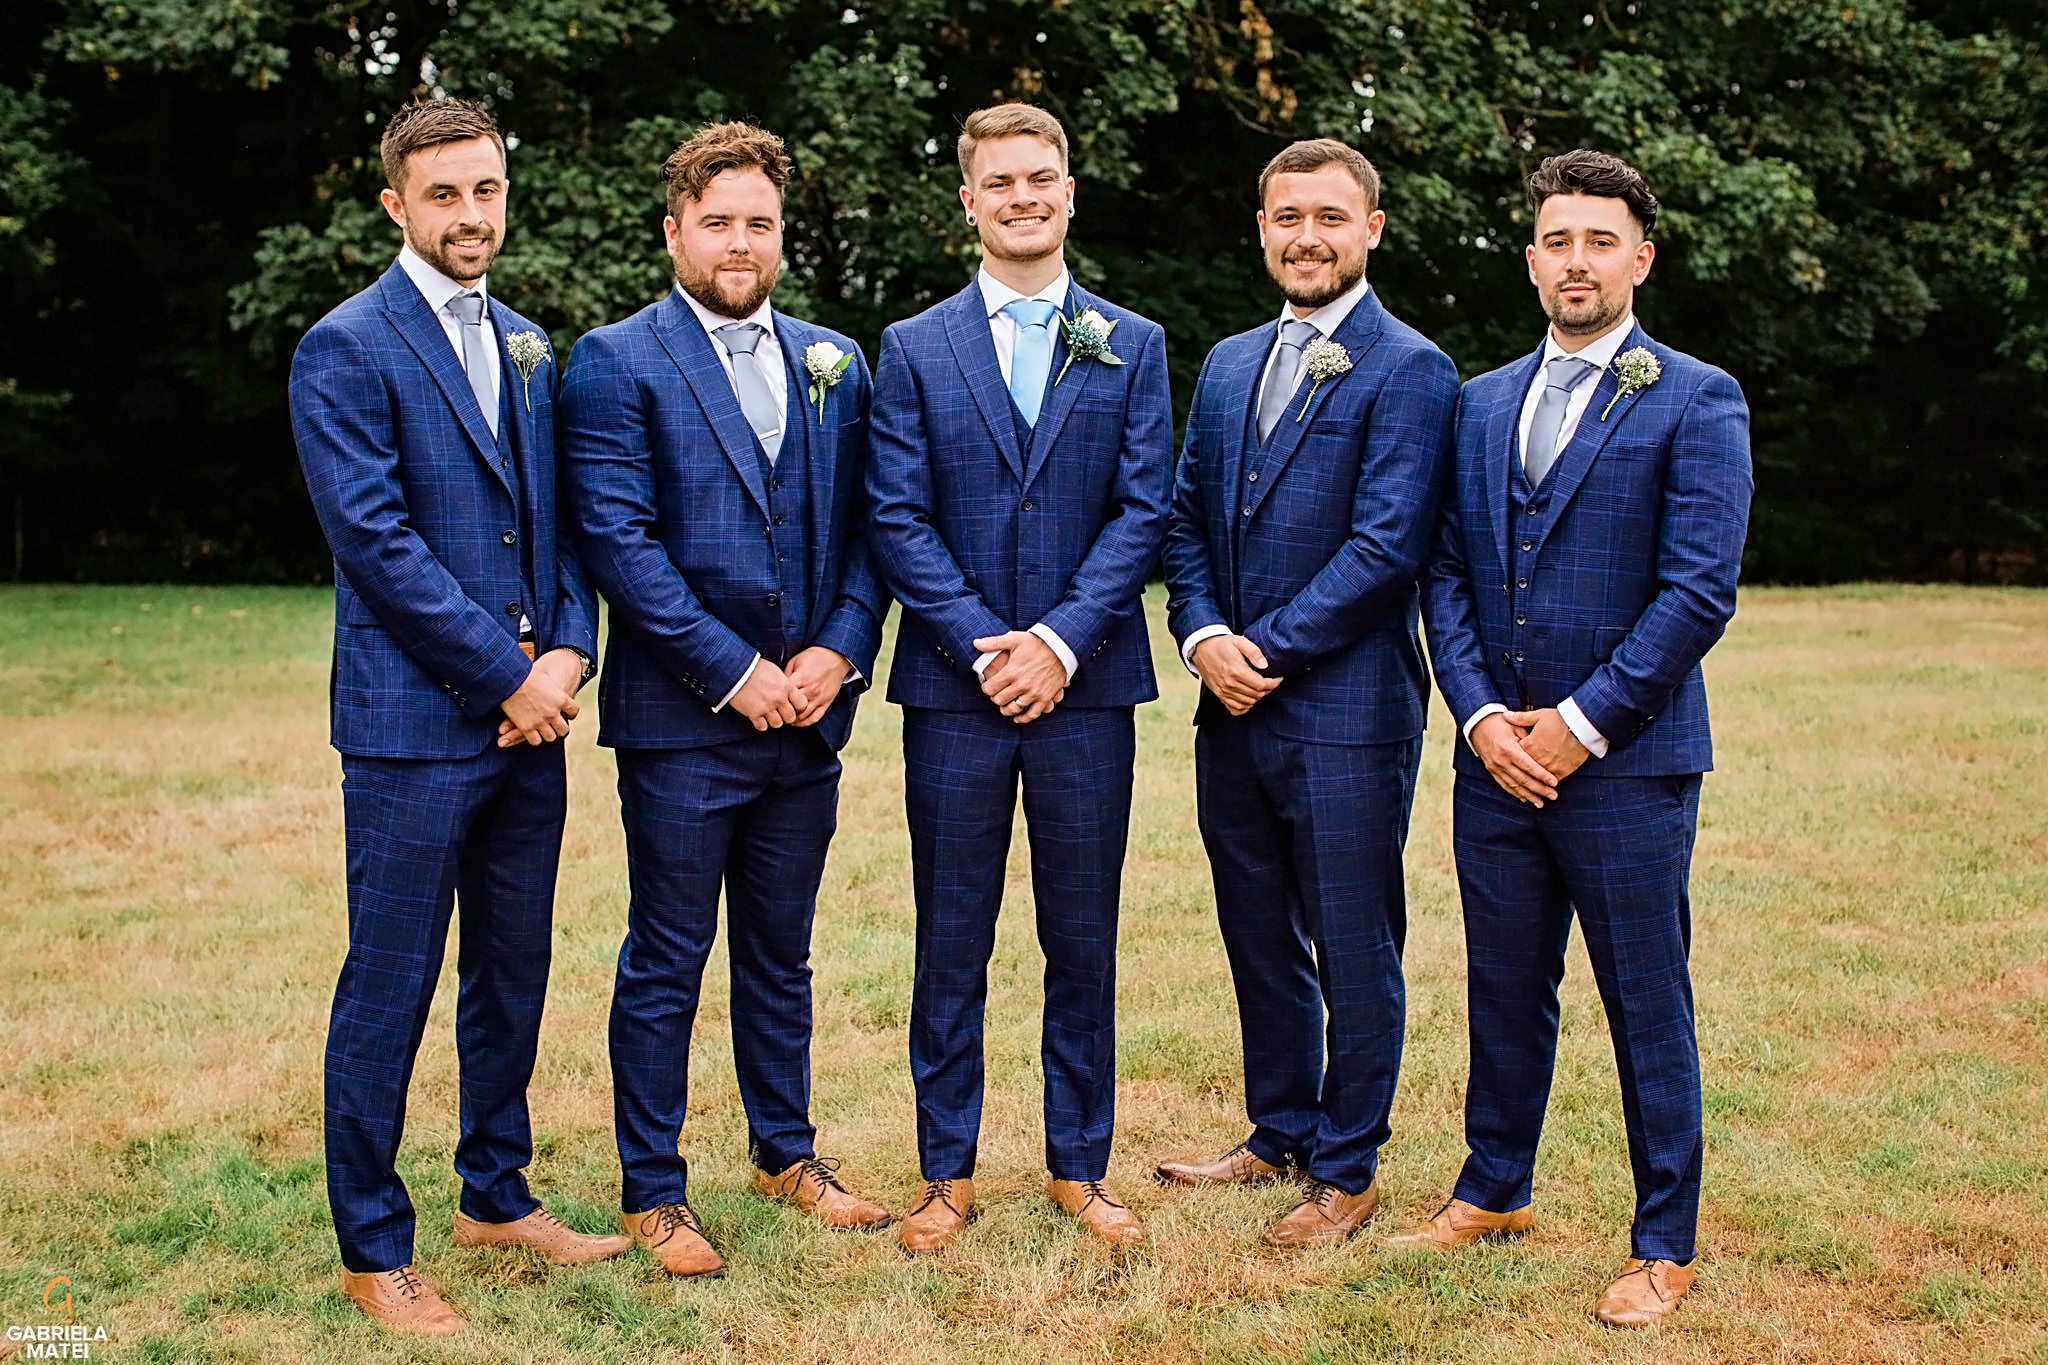 Wedding group shot with groom and his groomsmen